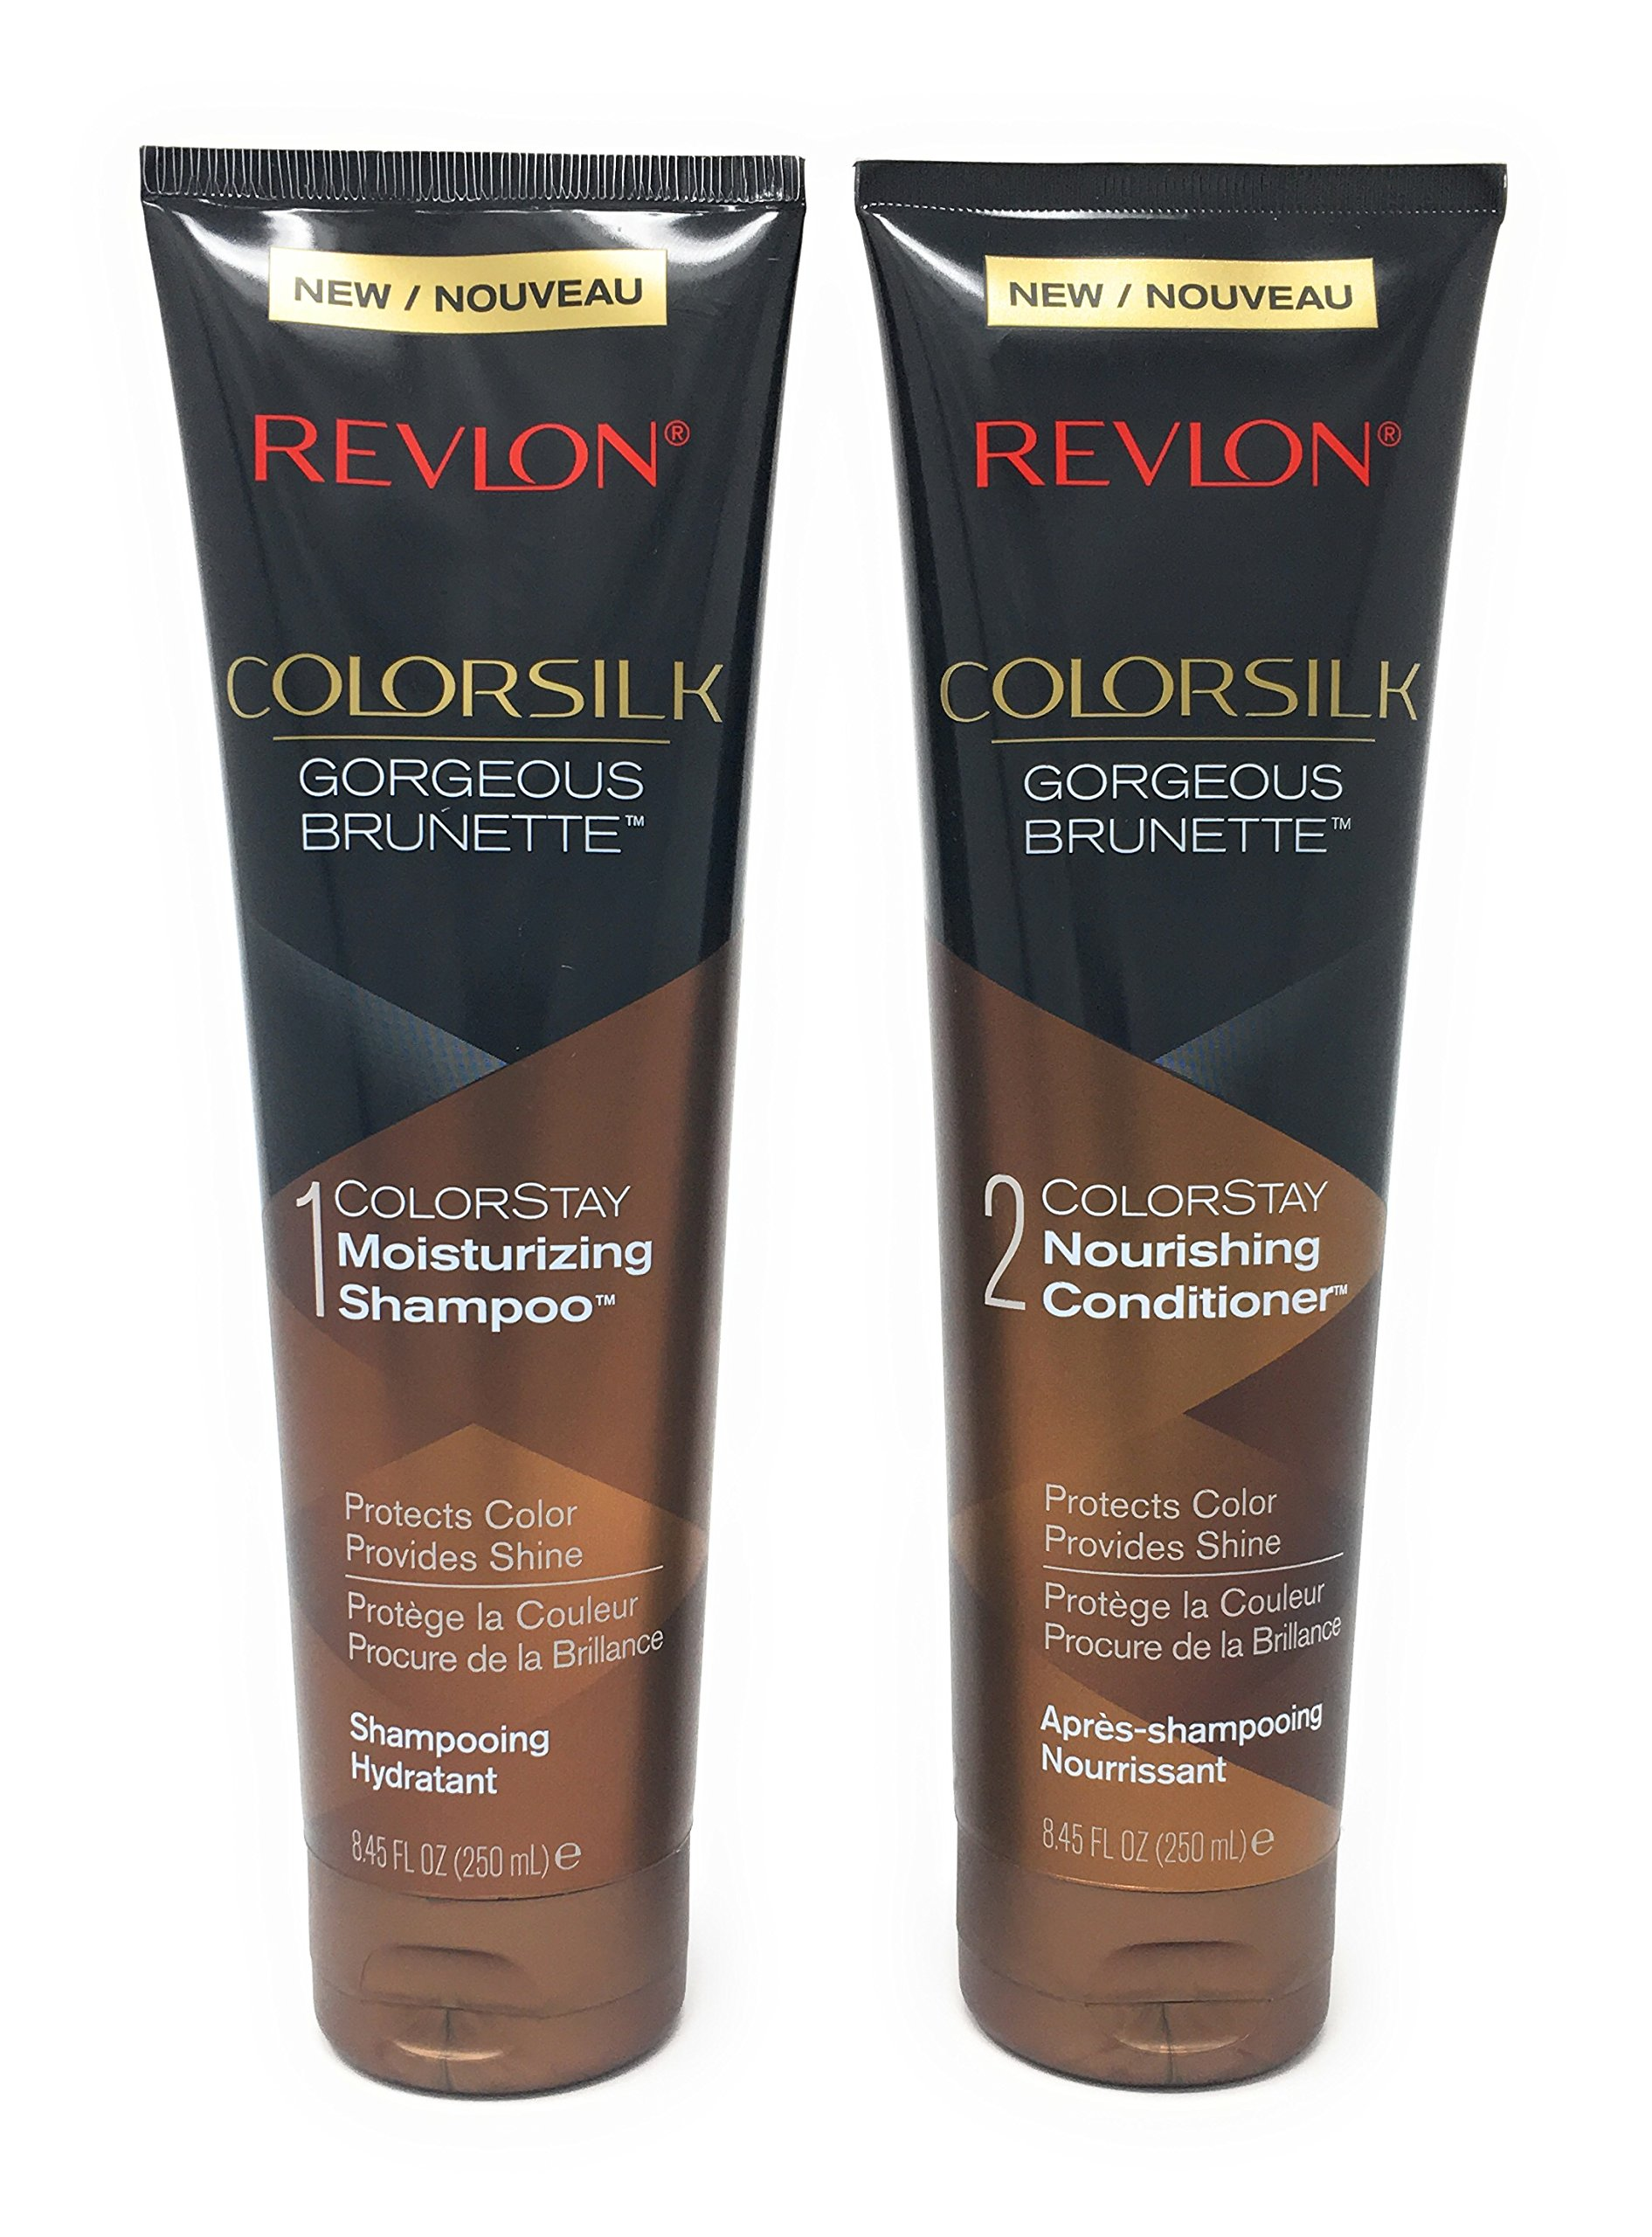 Get Quotations Revlon Colorsilk Colorstay Moisturizing Shampoo And Conditioner Set Gorgeous Brunette 8 45 Fl Oz Each